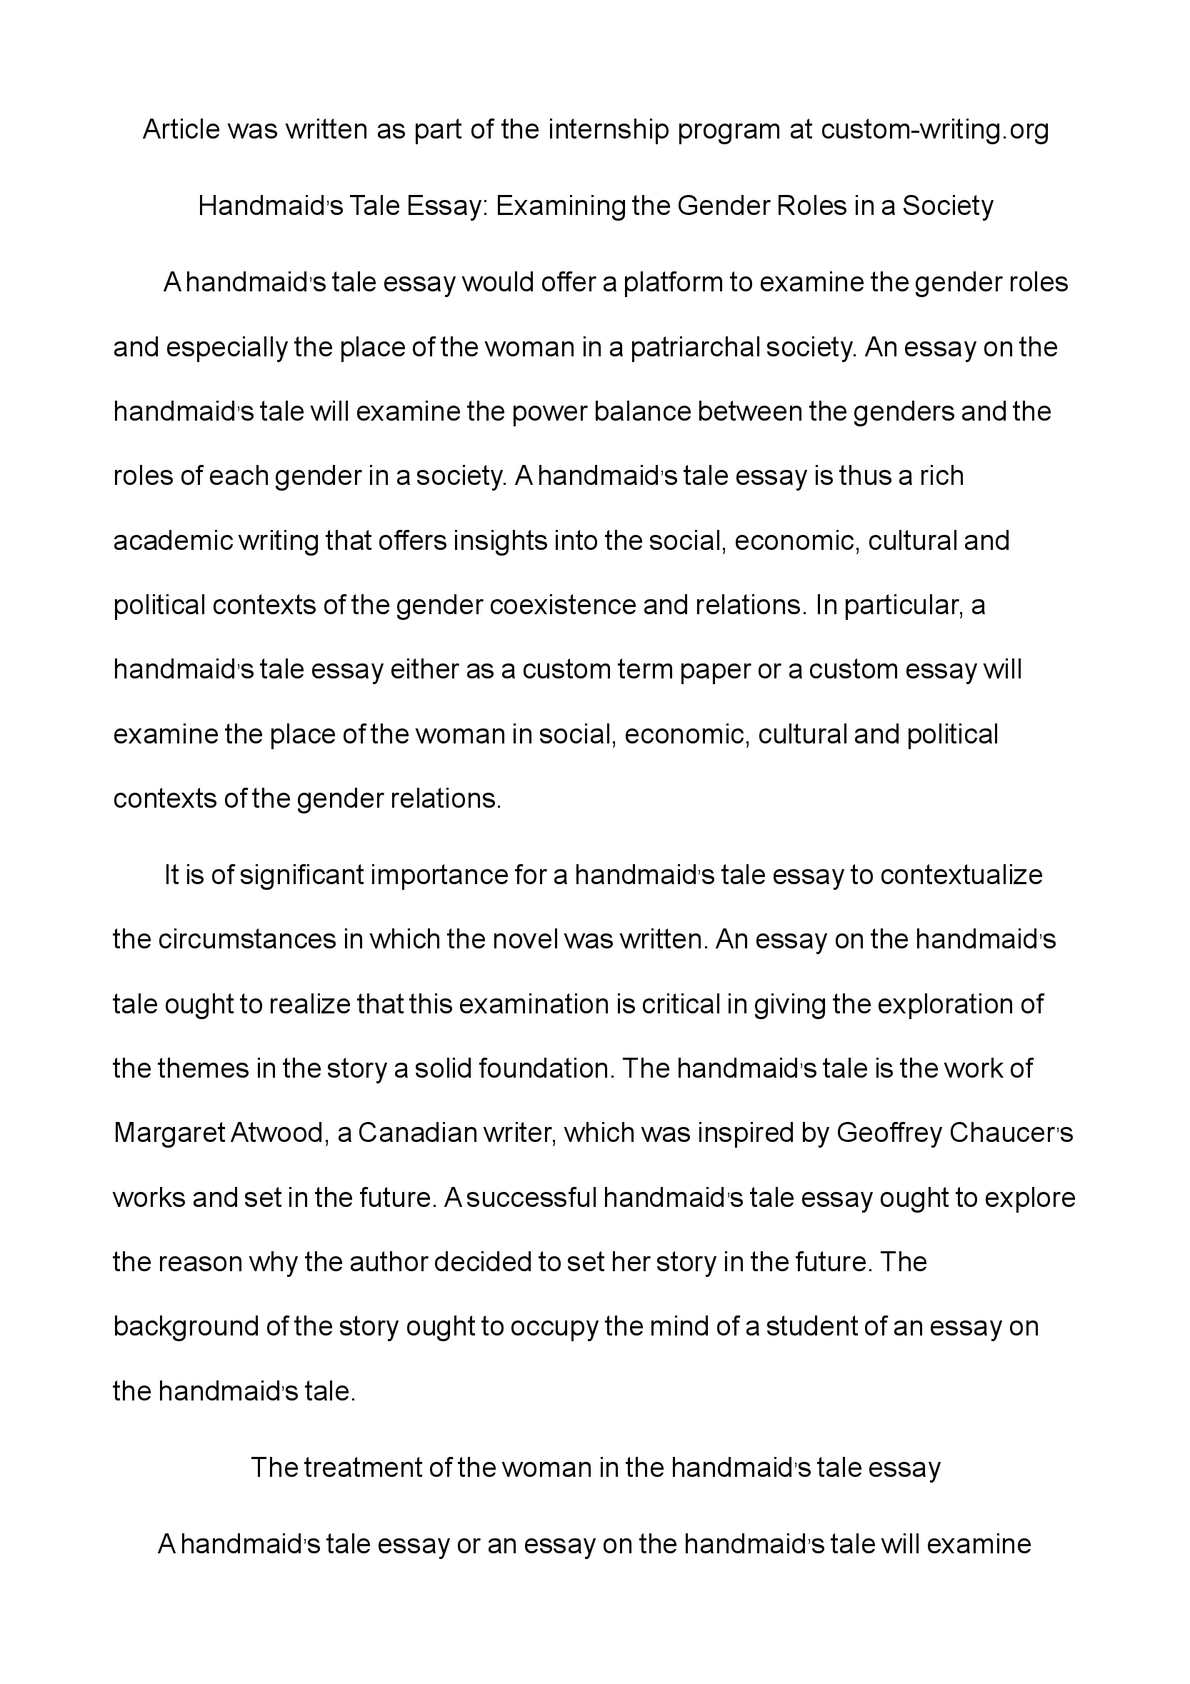 Search Essays In English Manipulation Of Power In The Handmaids Tale Political Science Essay also Modest Proposal Essay Examples The Handmaids Tale Thesis Statements And Important Quotes  Dfadukecom Science And Technology Essay